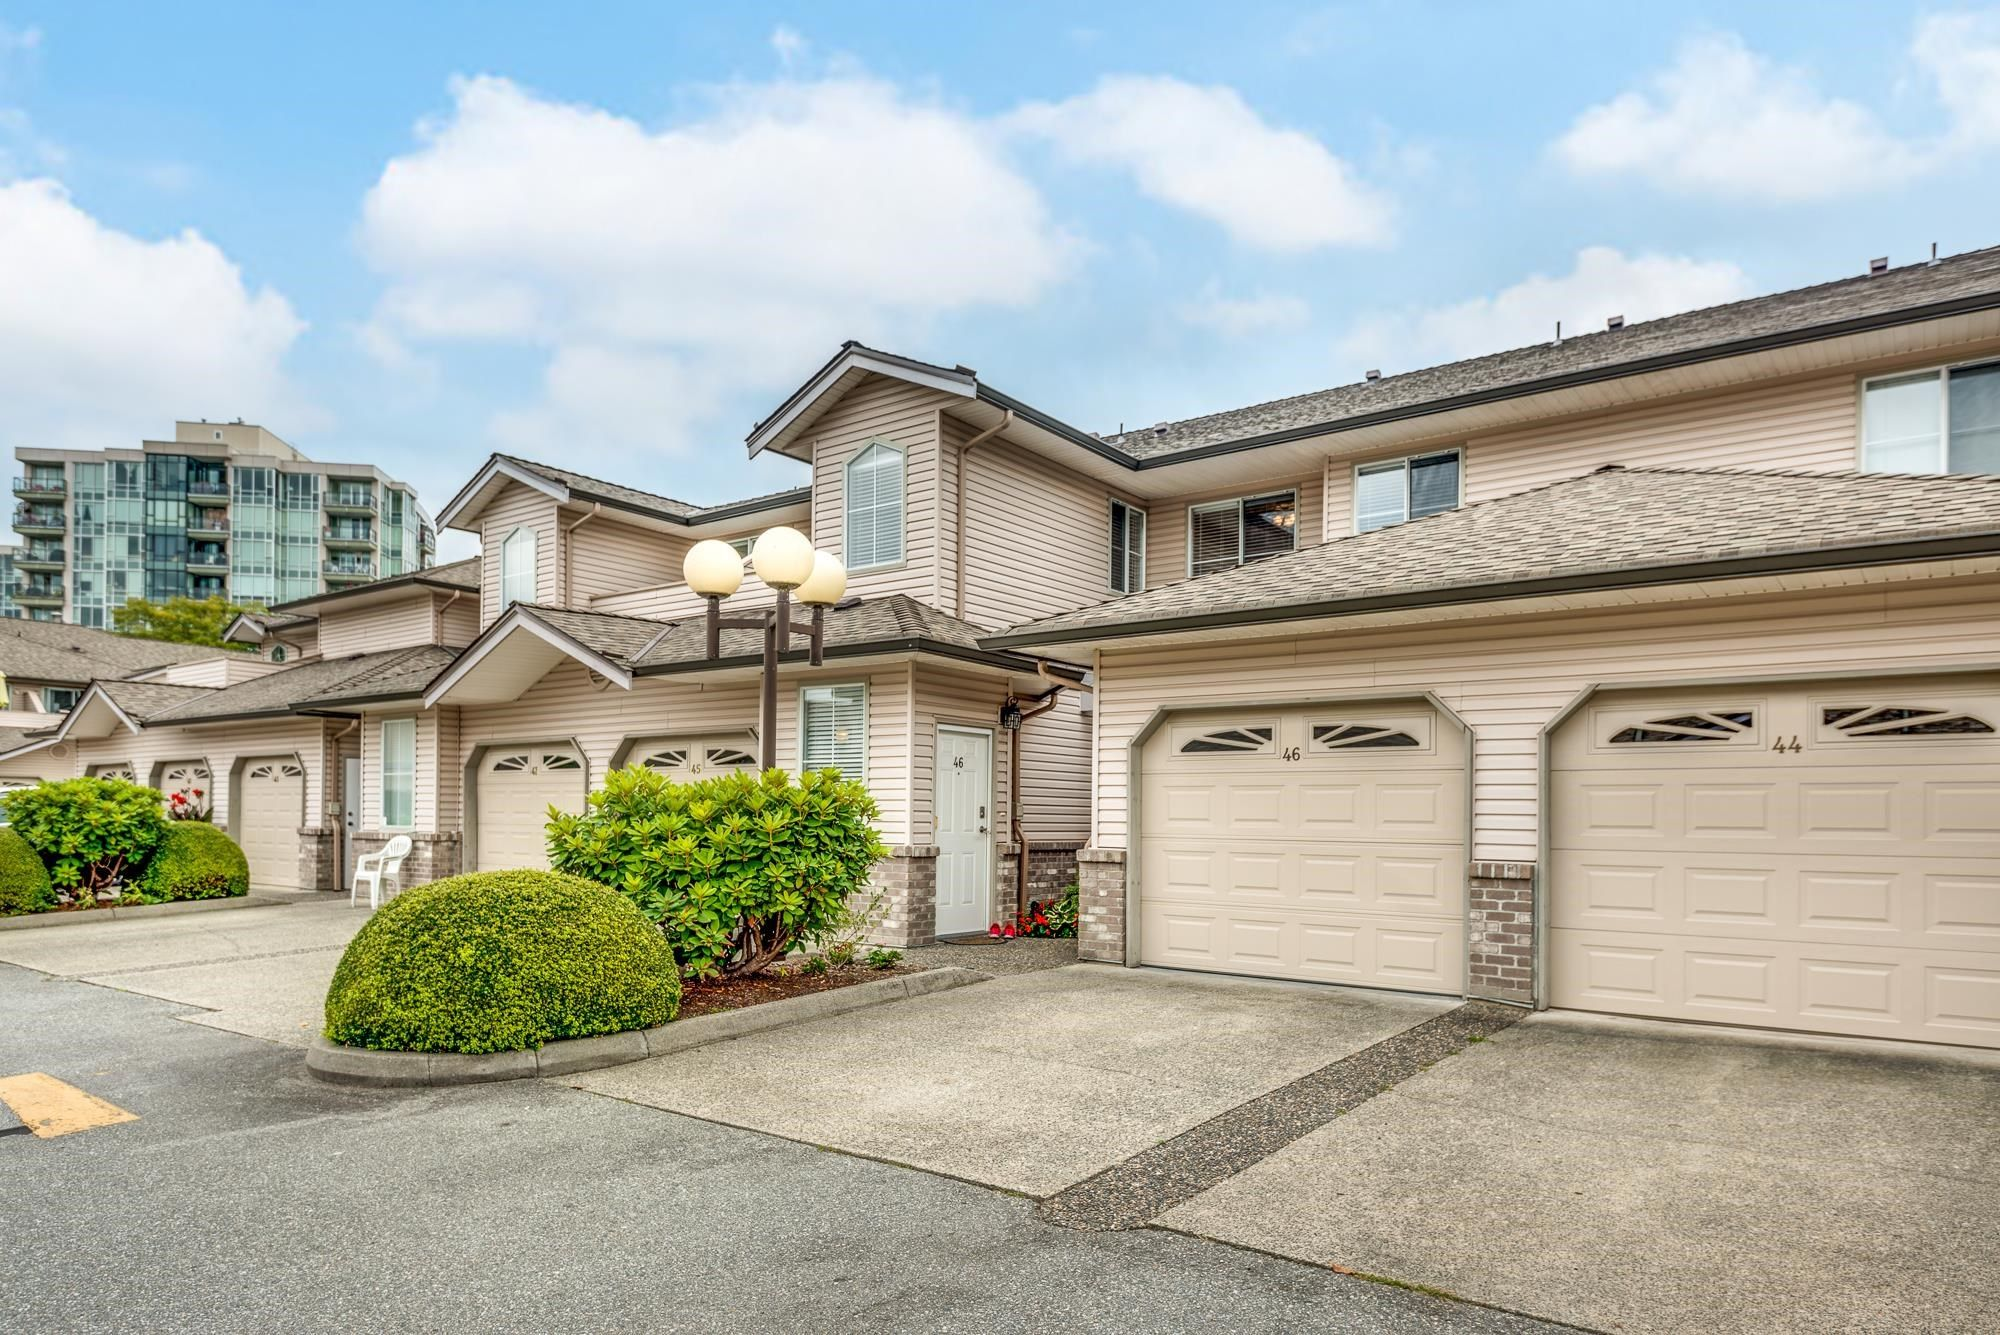 """Main Photo: 46 19060 FORD Road in Pitt Meadows: Central Meadows Townhouse for sale in """"REGENCY COURT"""" : MLS®# R2615895"""